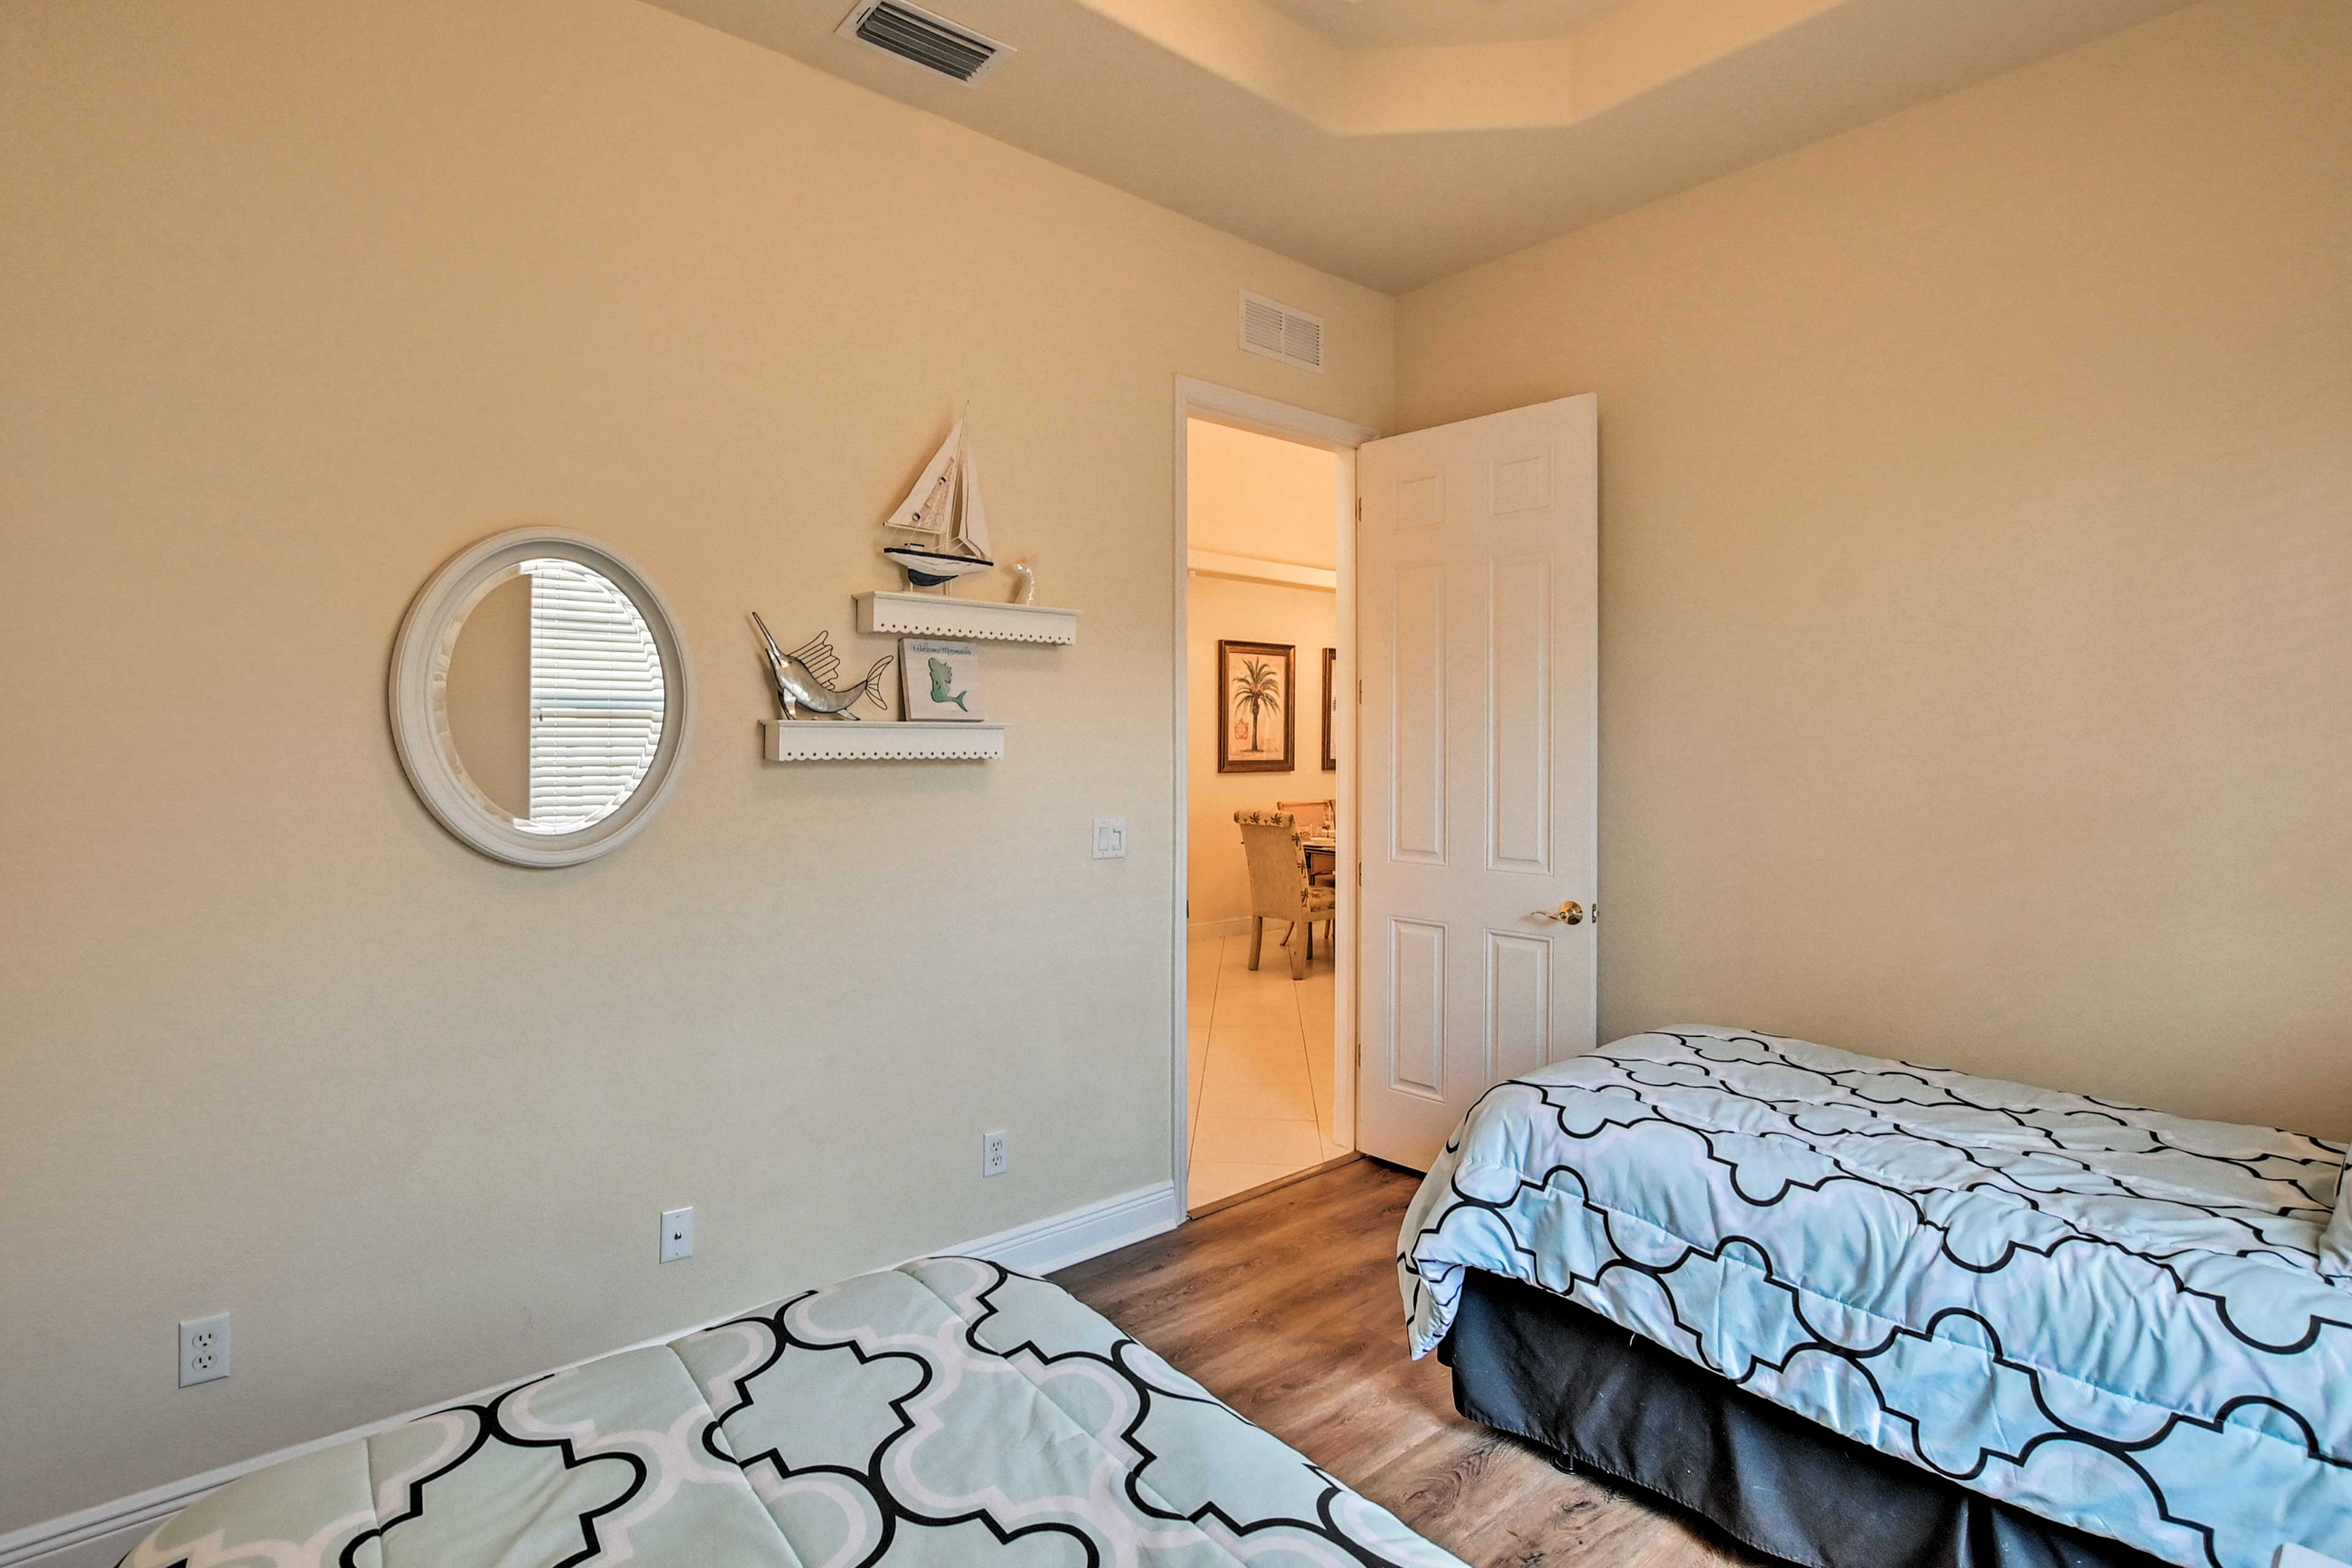 Kids will love sharing this bedroom.